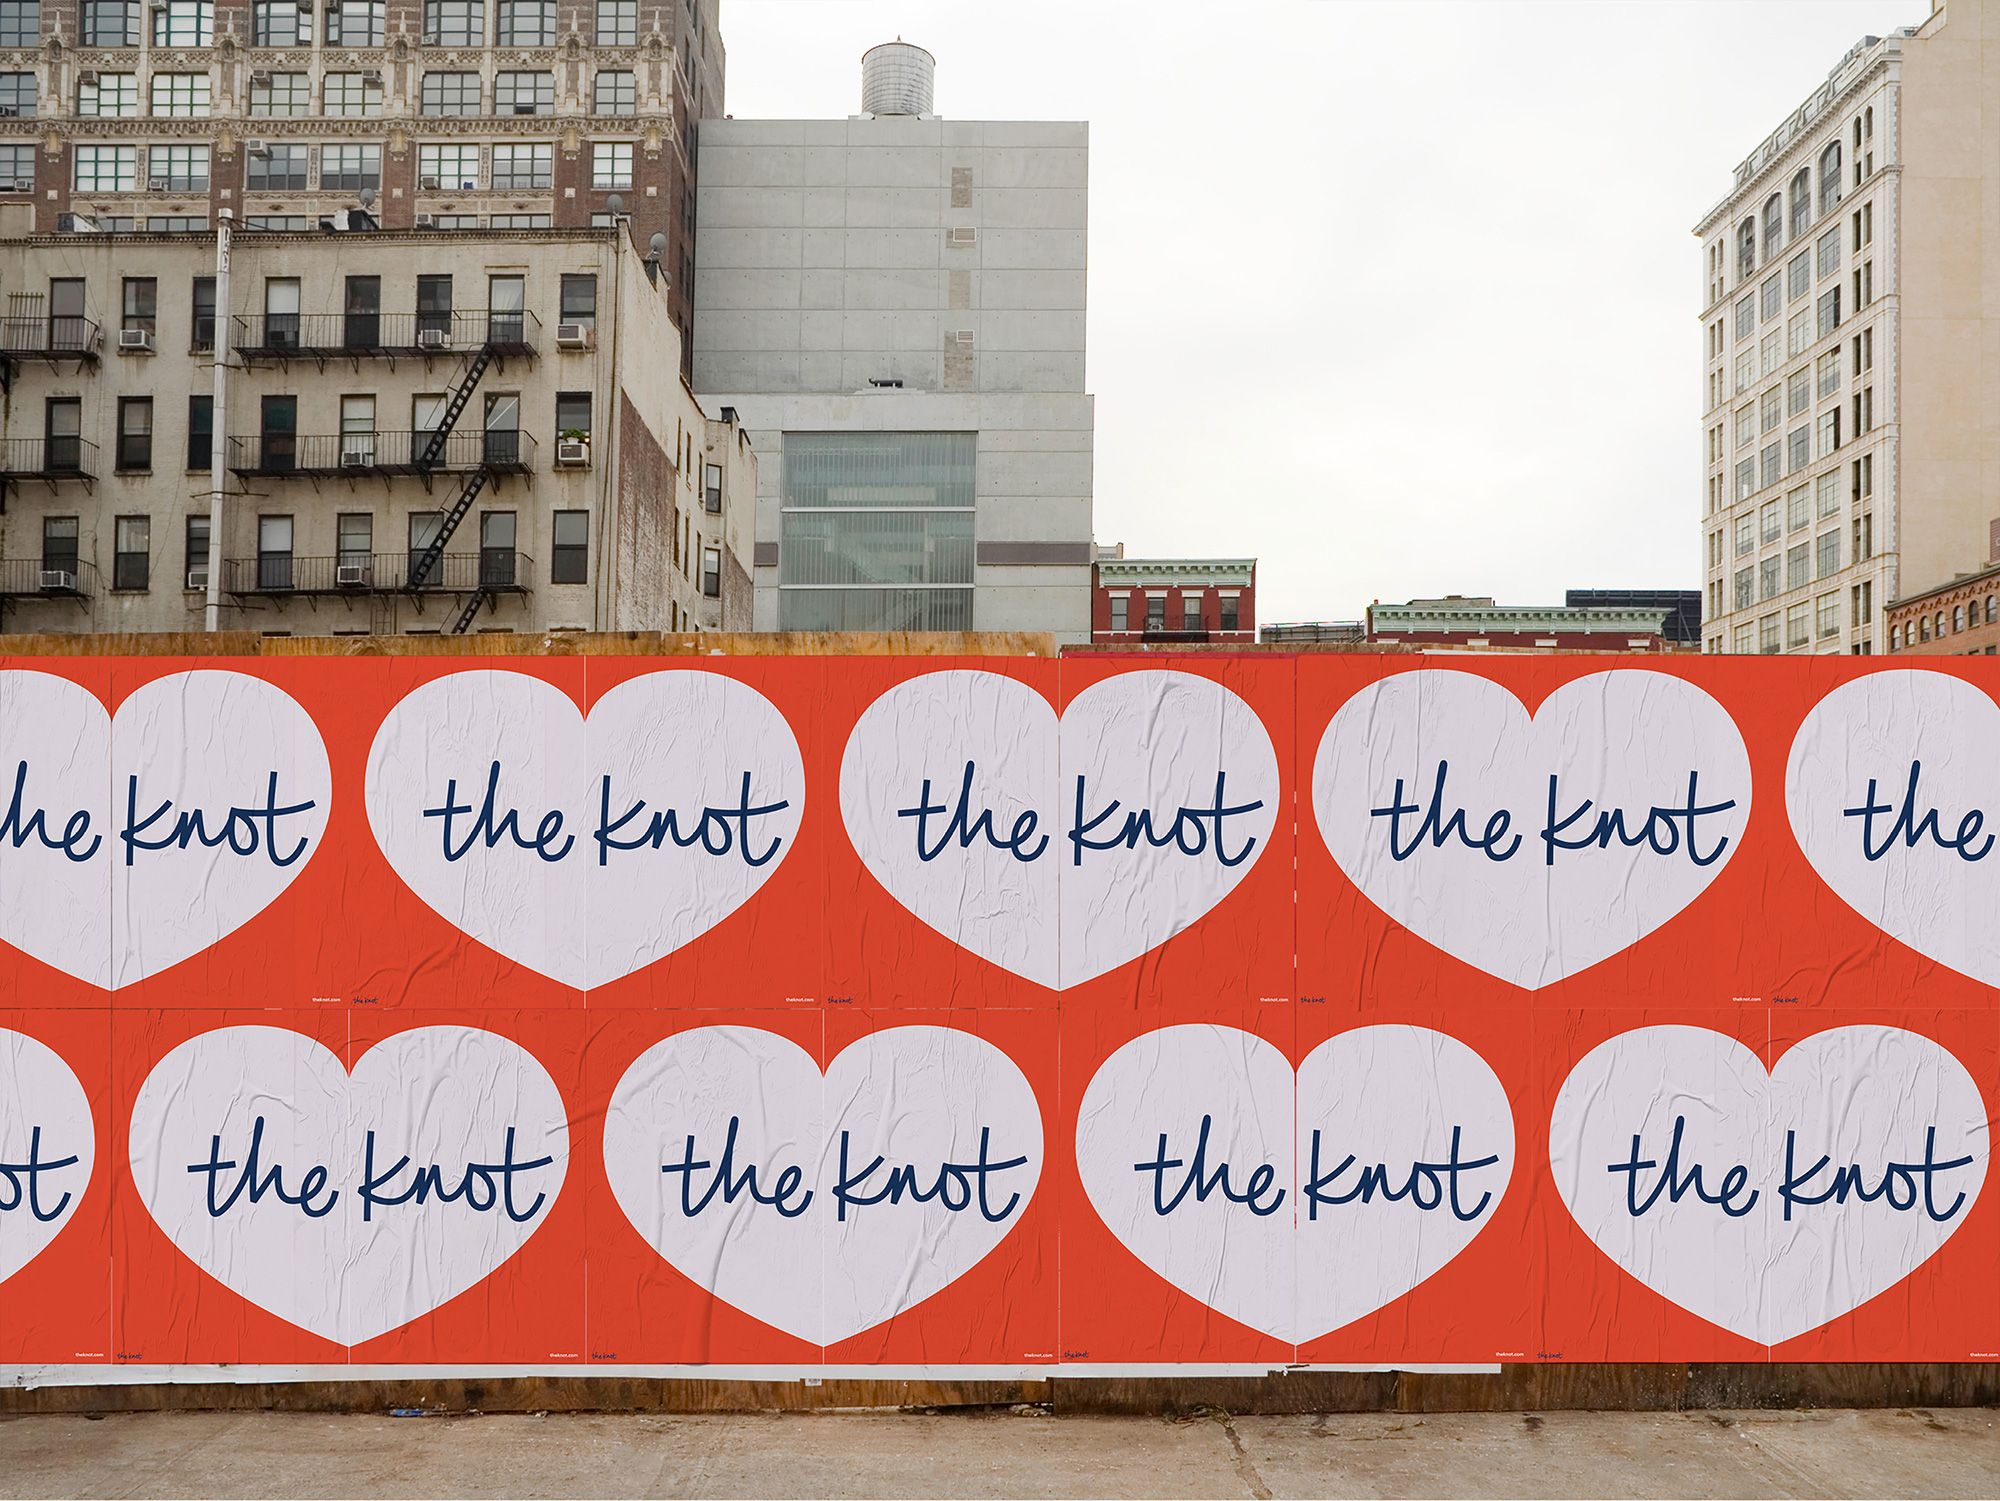 New Logo and Identity for The Knot by Pentagram Word